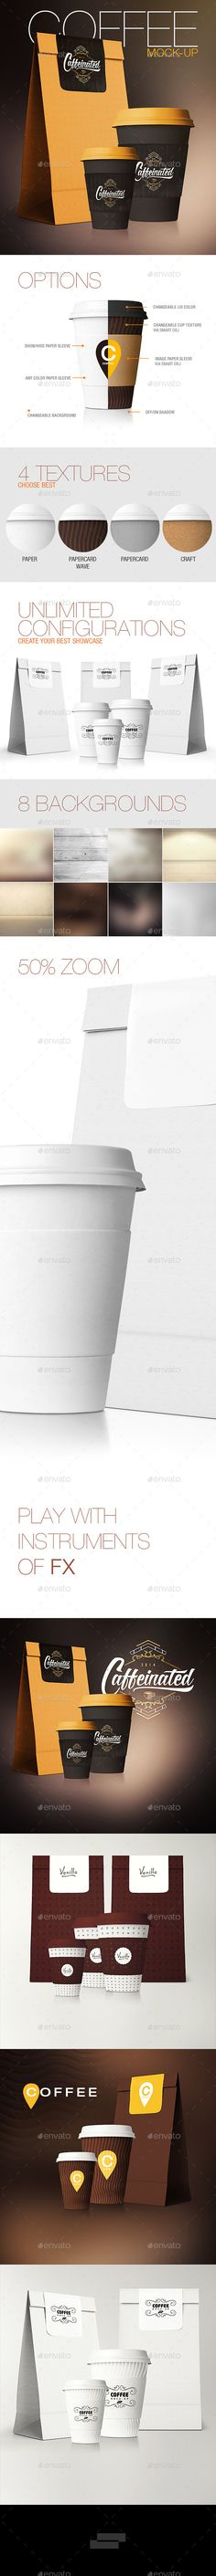 Coffee Cup / Coffee Package Mock-Up #design Download: http://graphicriver.net/item/coffee-cup-coffee-package-mockup/11415496?ref=ksioks